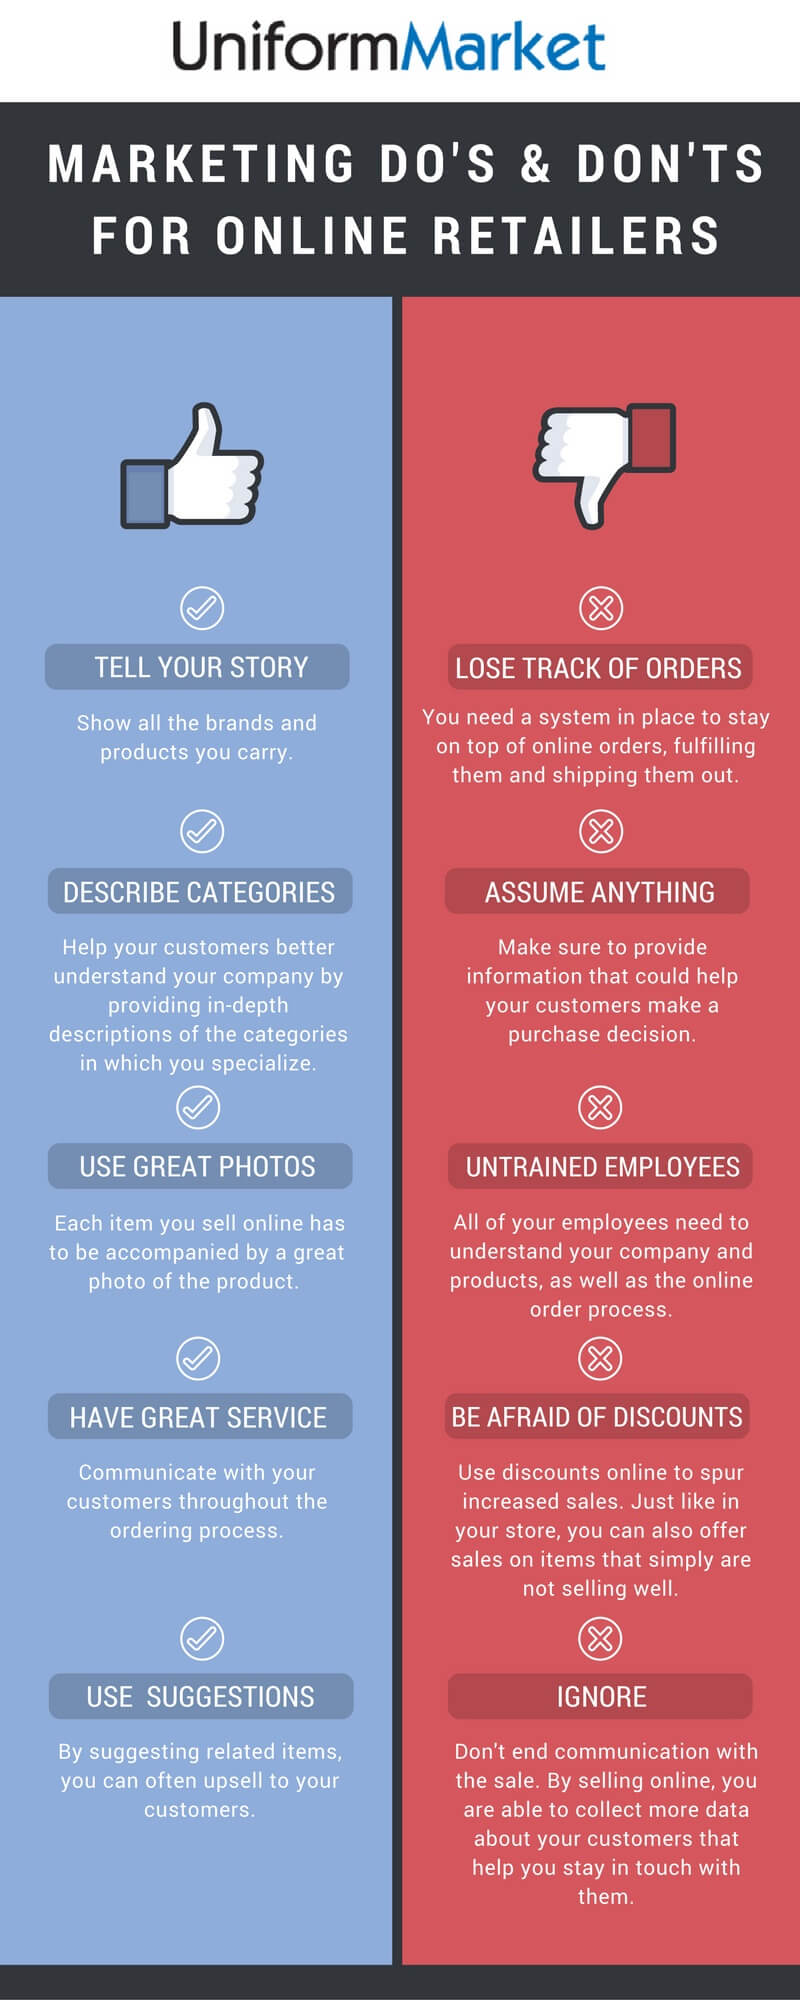 marketing-dos-and-donts-for-online-retailers.jpg